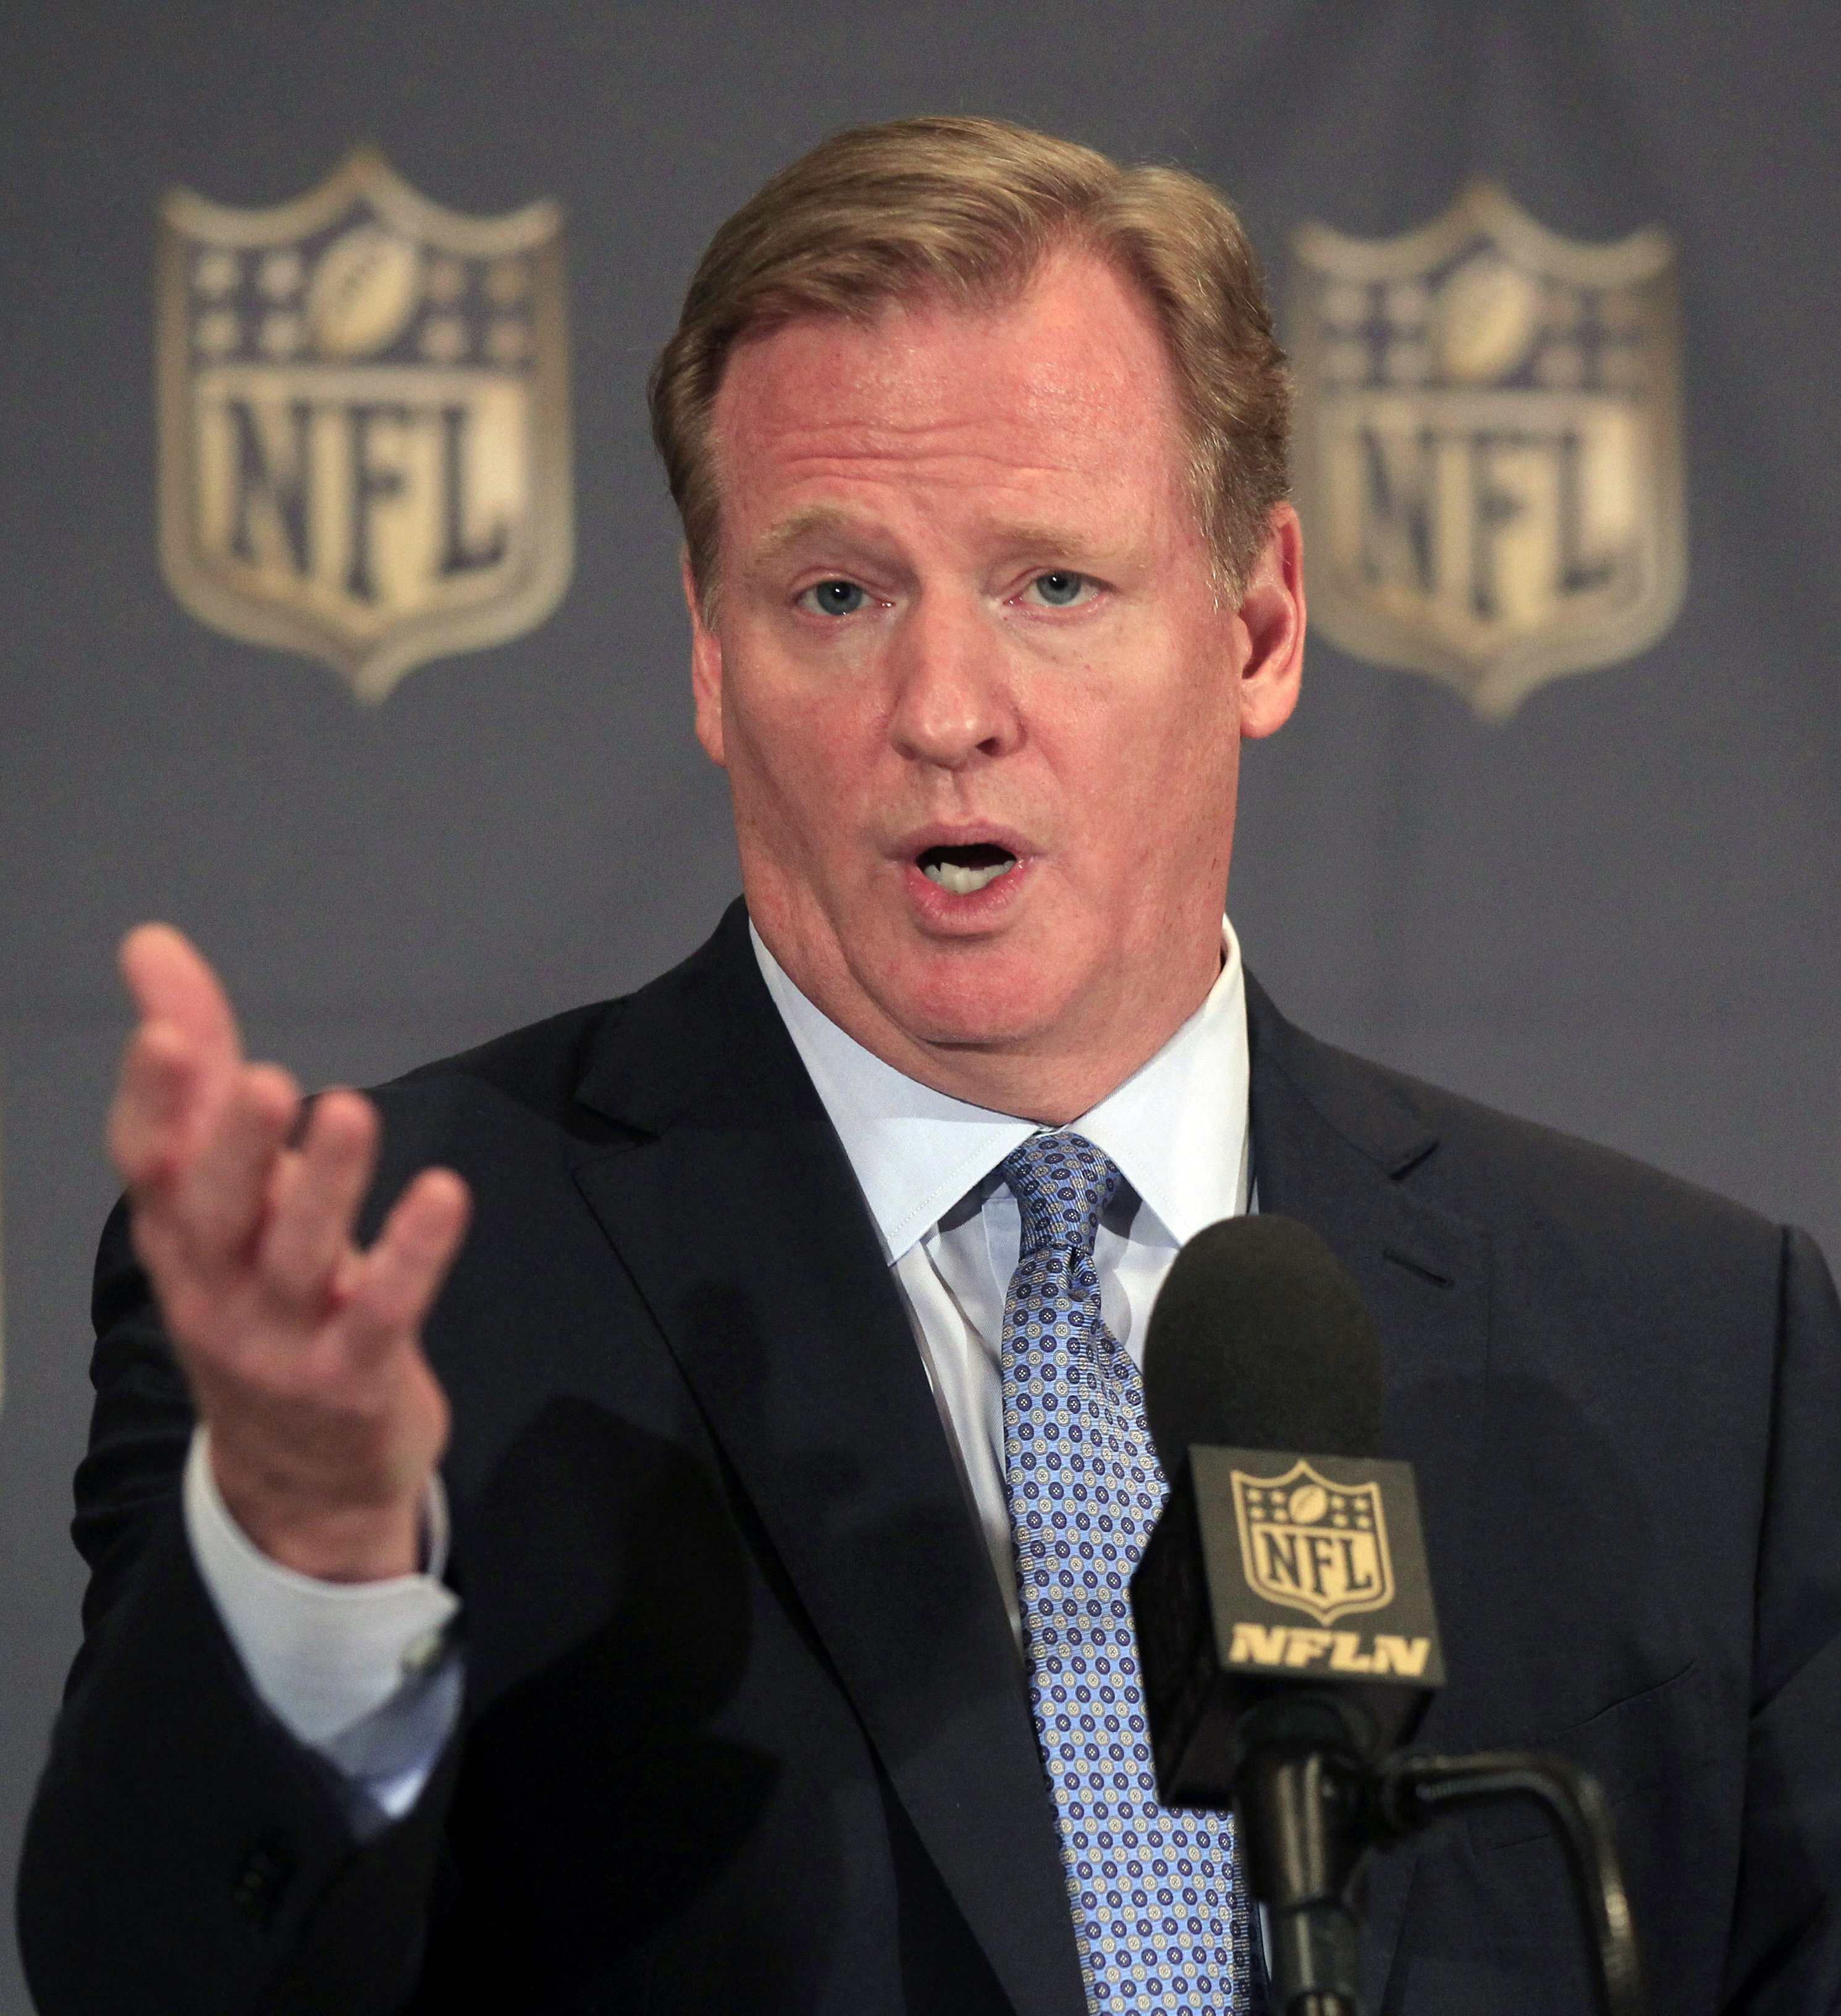 NFL Commissioner Roger Goodell speaks at a news conference at the league's owners meetings at the Hyatt Regency hotel, Tuesday, Aug. 11, 2015, in Schaumburg, Ill. (AP Photo/Christian K. Lee)